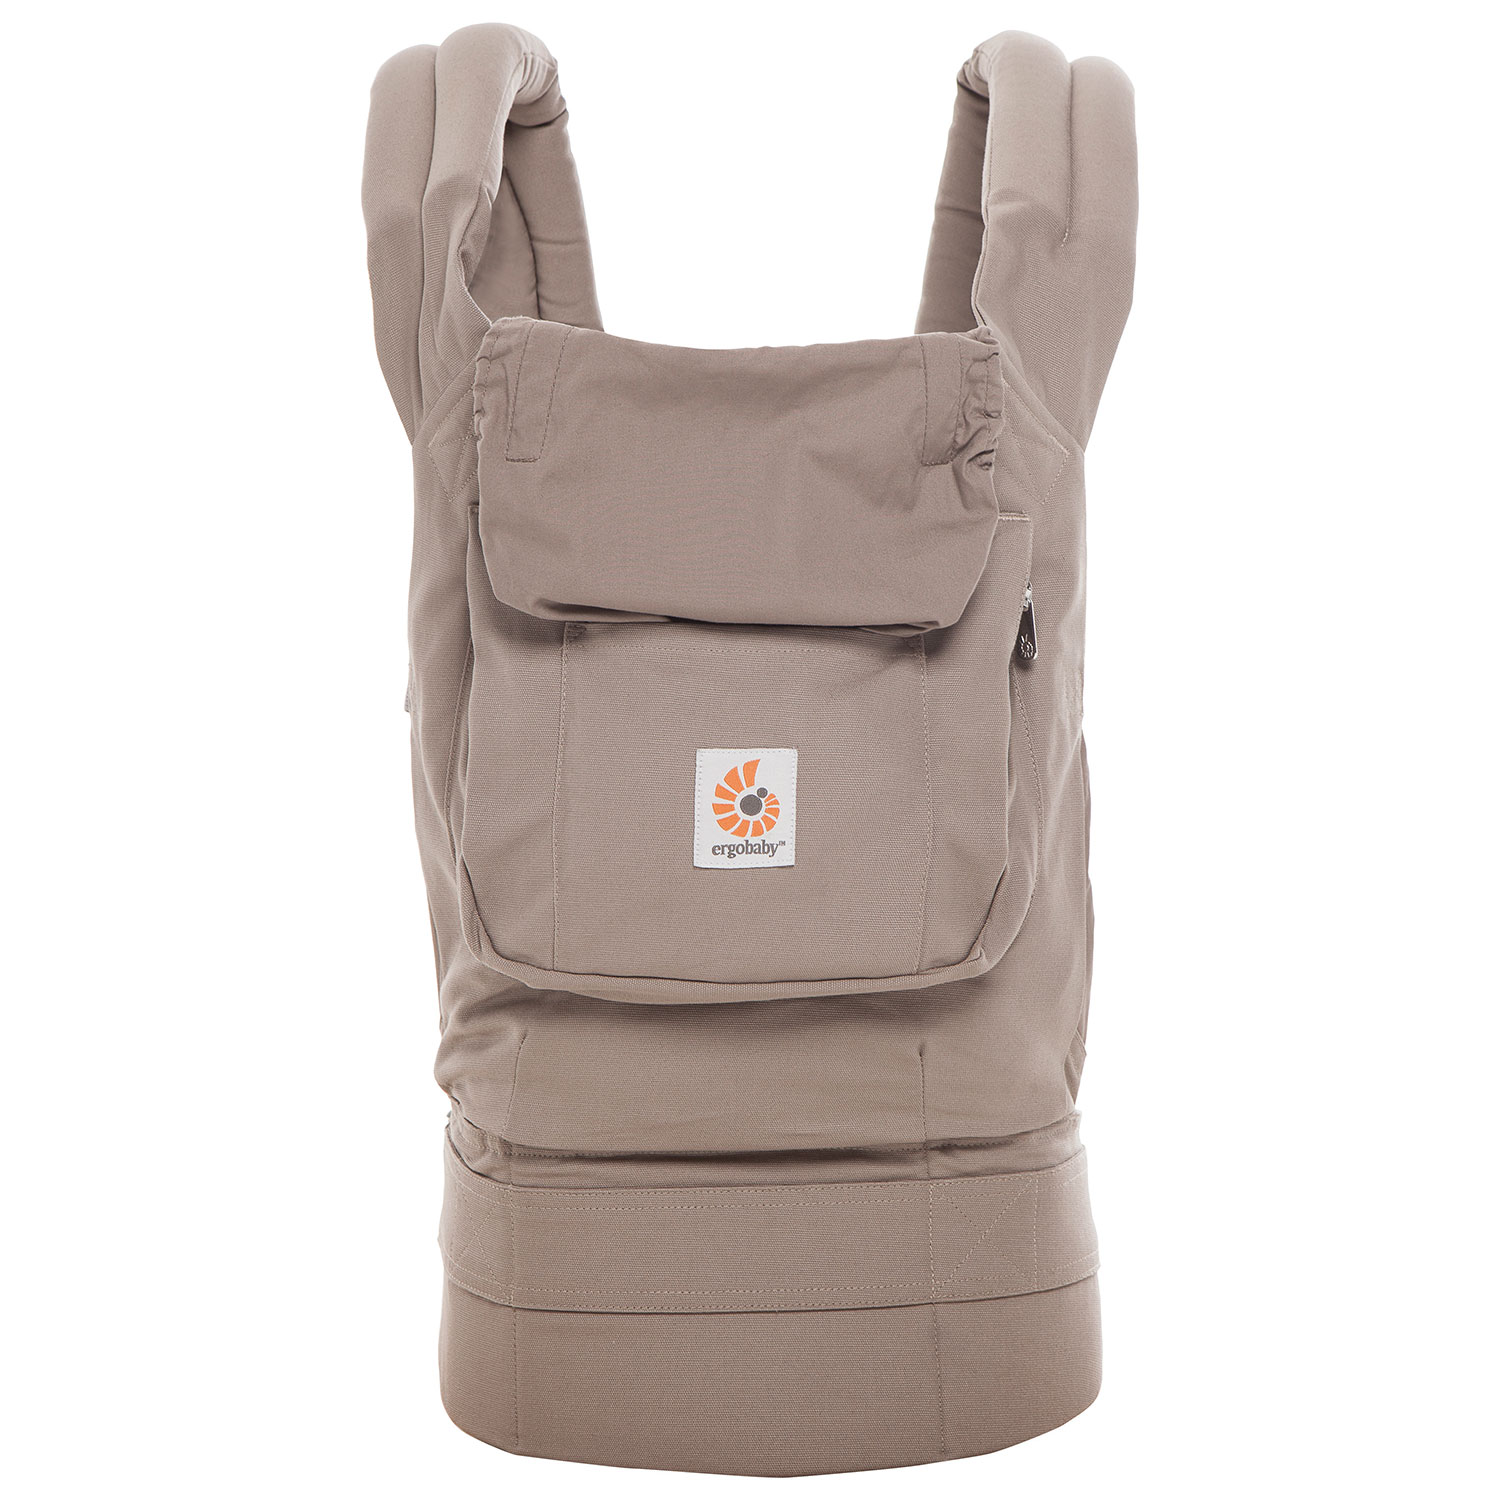 50% off Ergobaby Baby Carriers @ Best Buy Canada